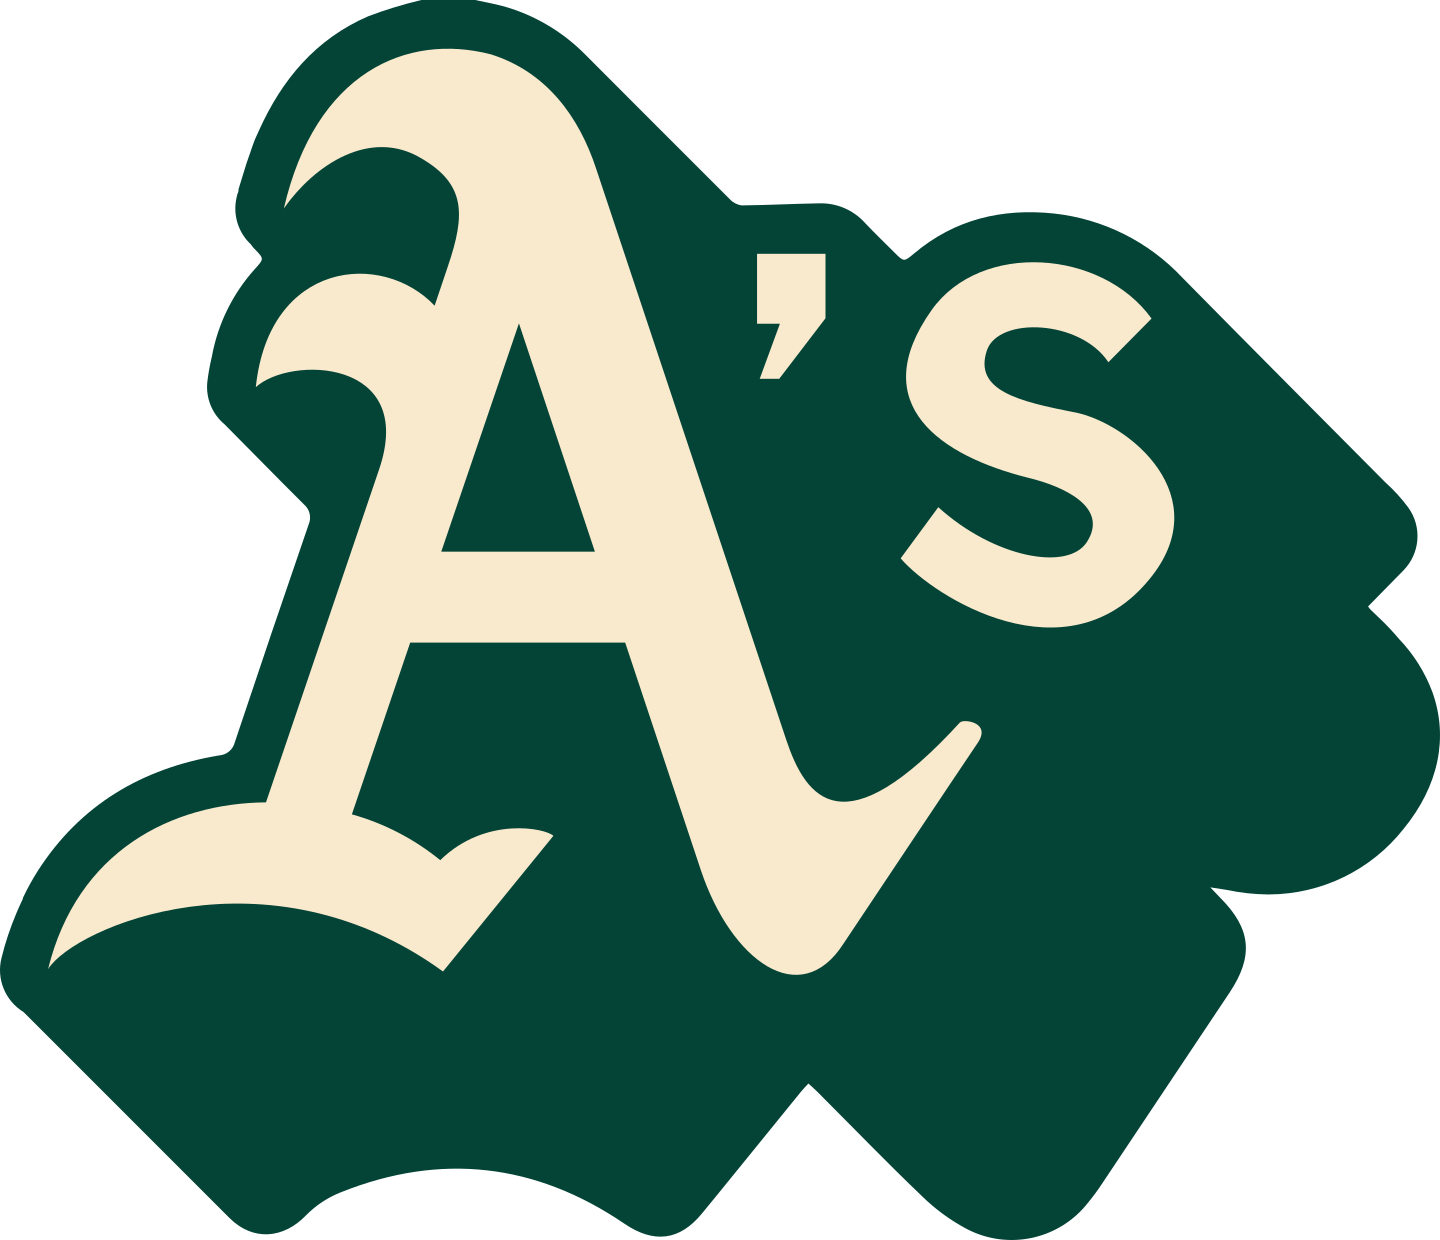 oakland athletics logo 2 - Oakland Athletics Logo